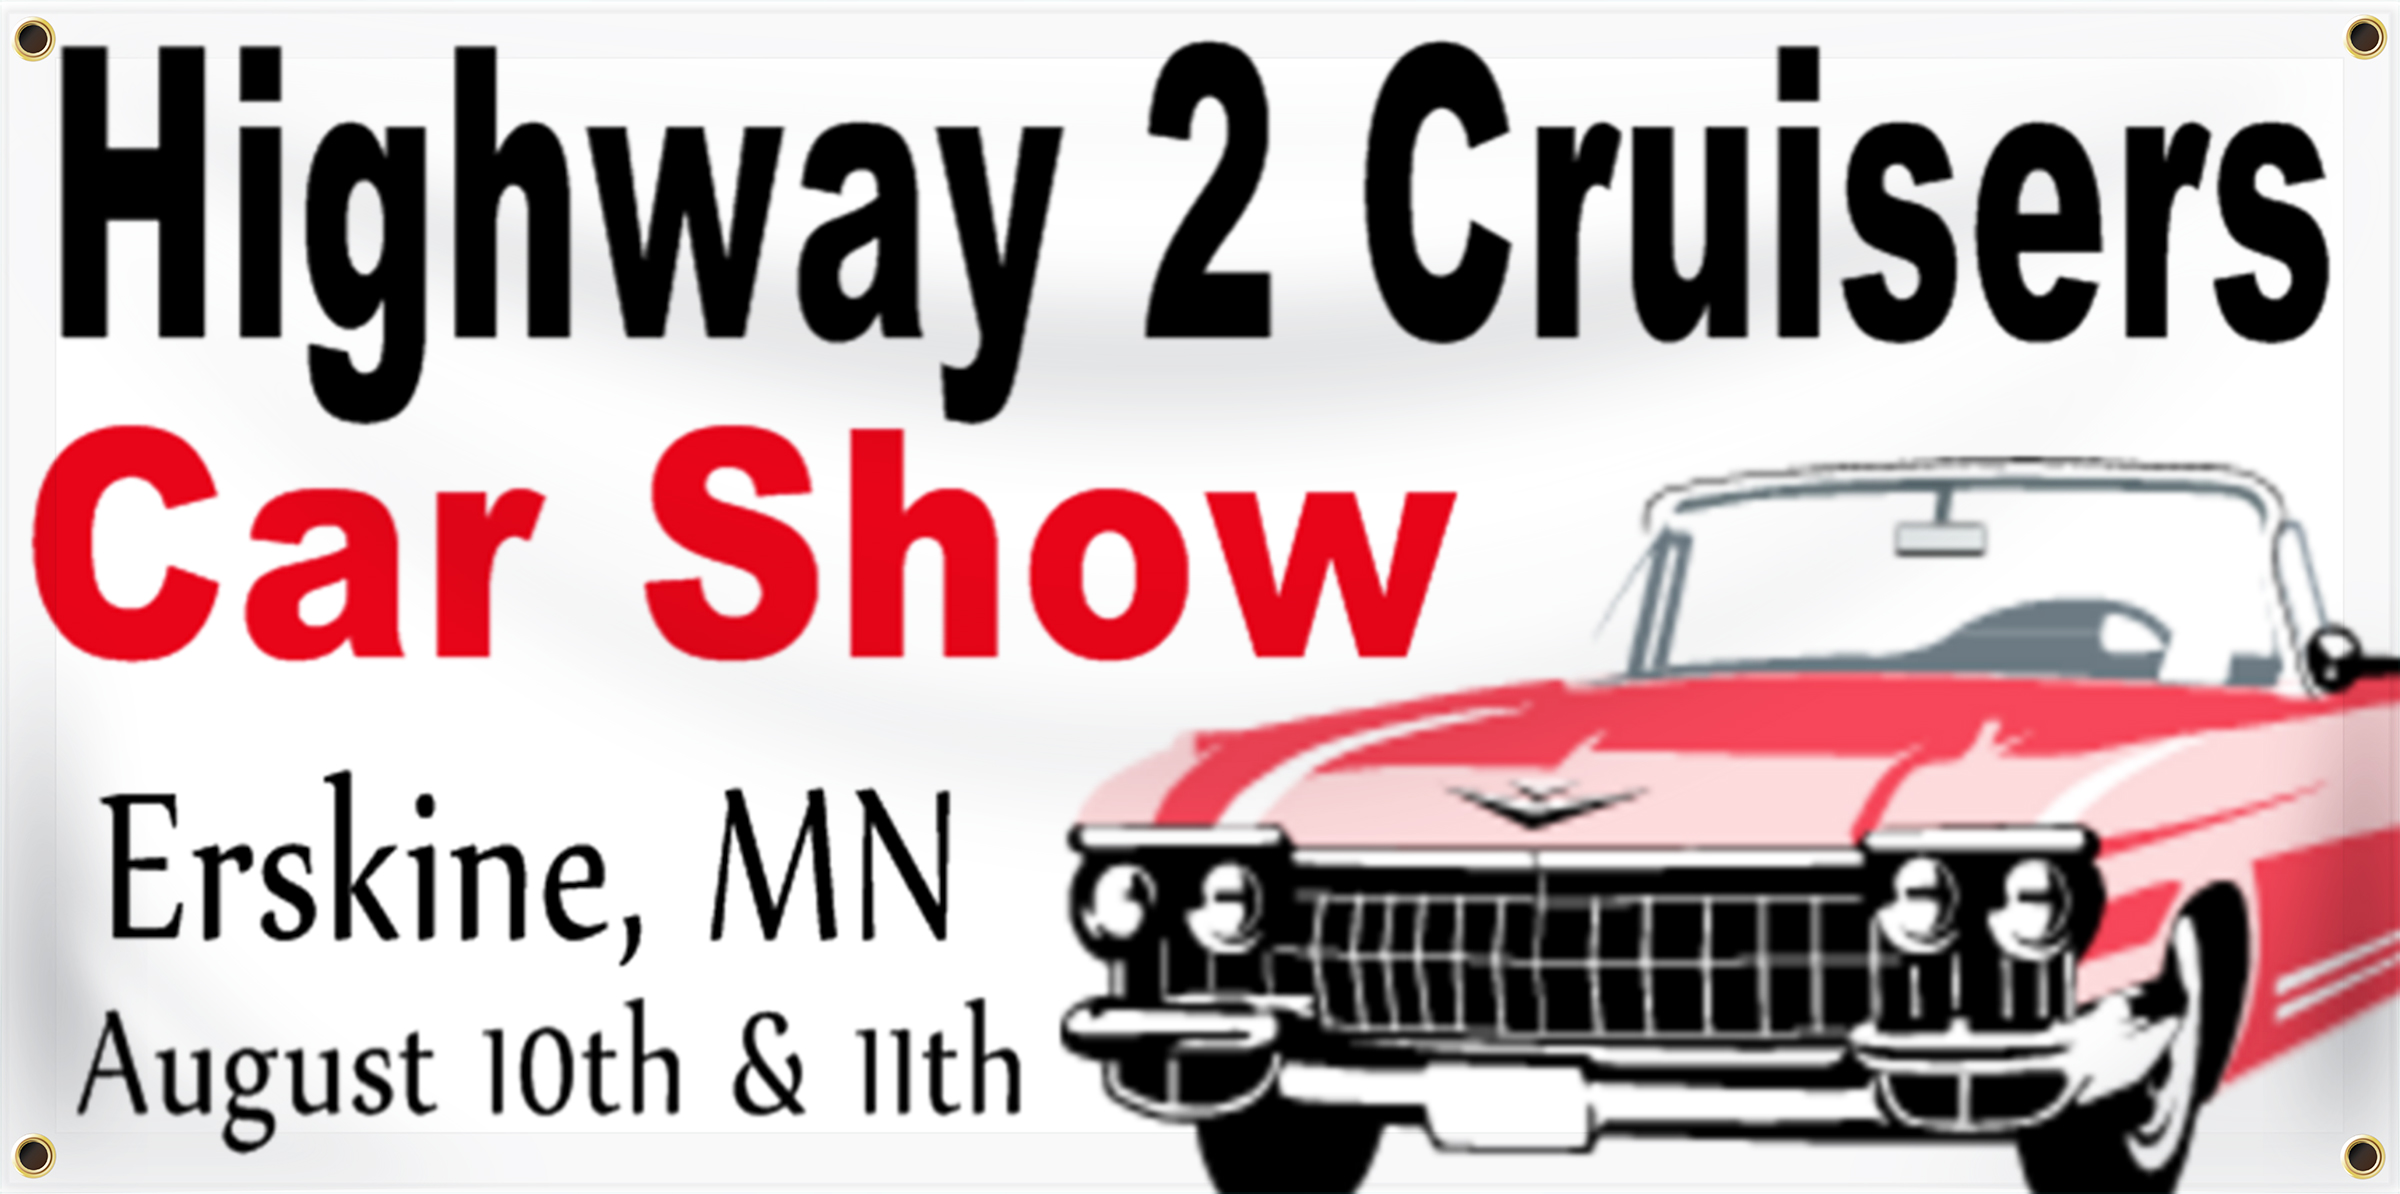 Car Show Banner Ideas | LawnSigns.com